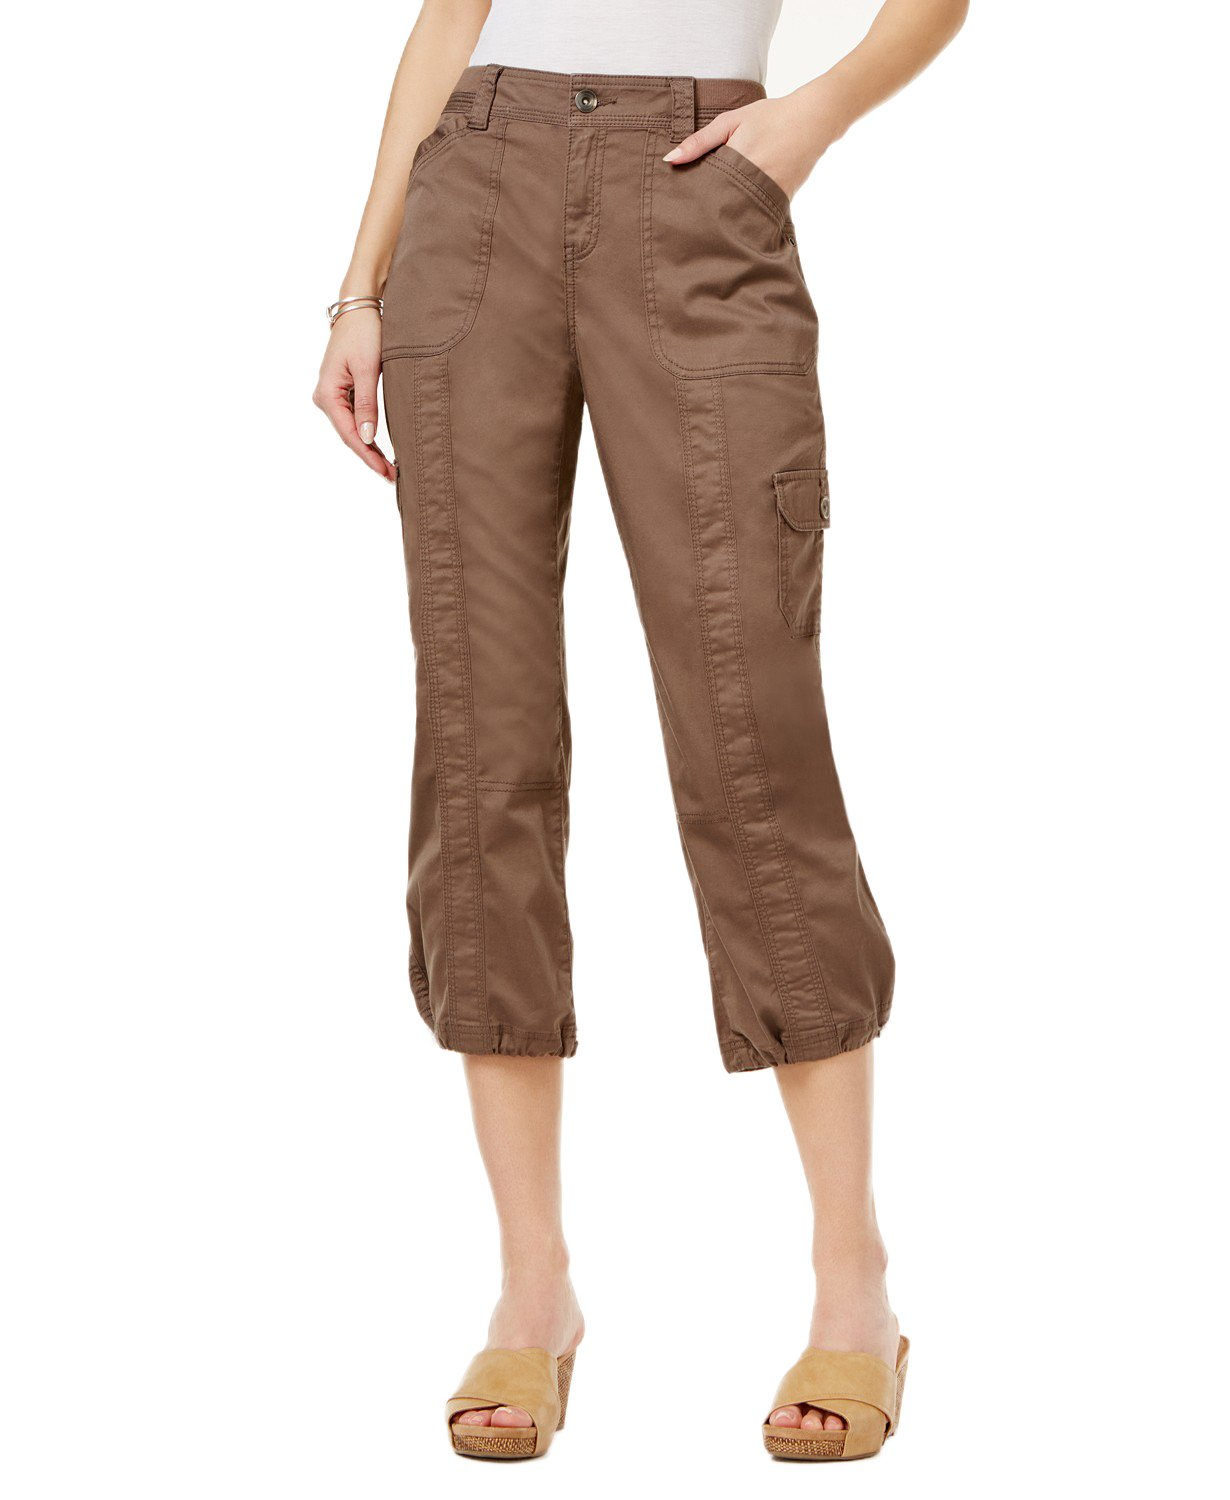 Style & Co. Classic Cargo Capri Pants (Brown Clay, 16)